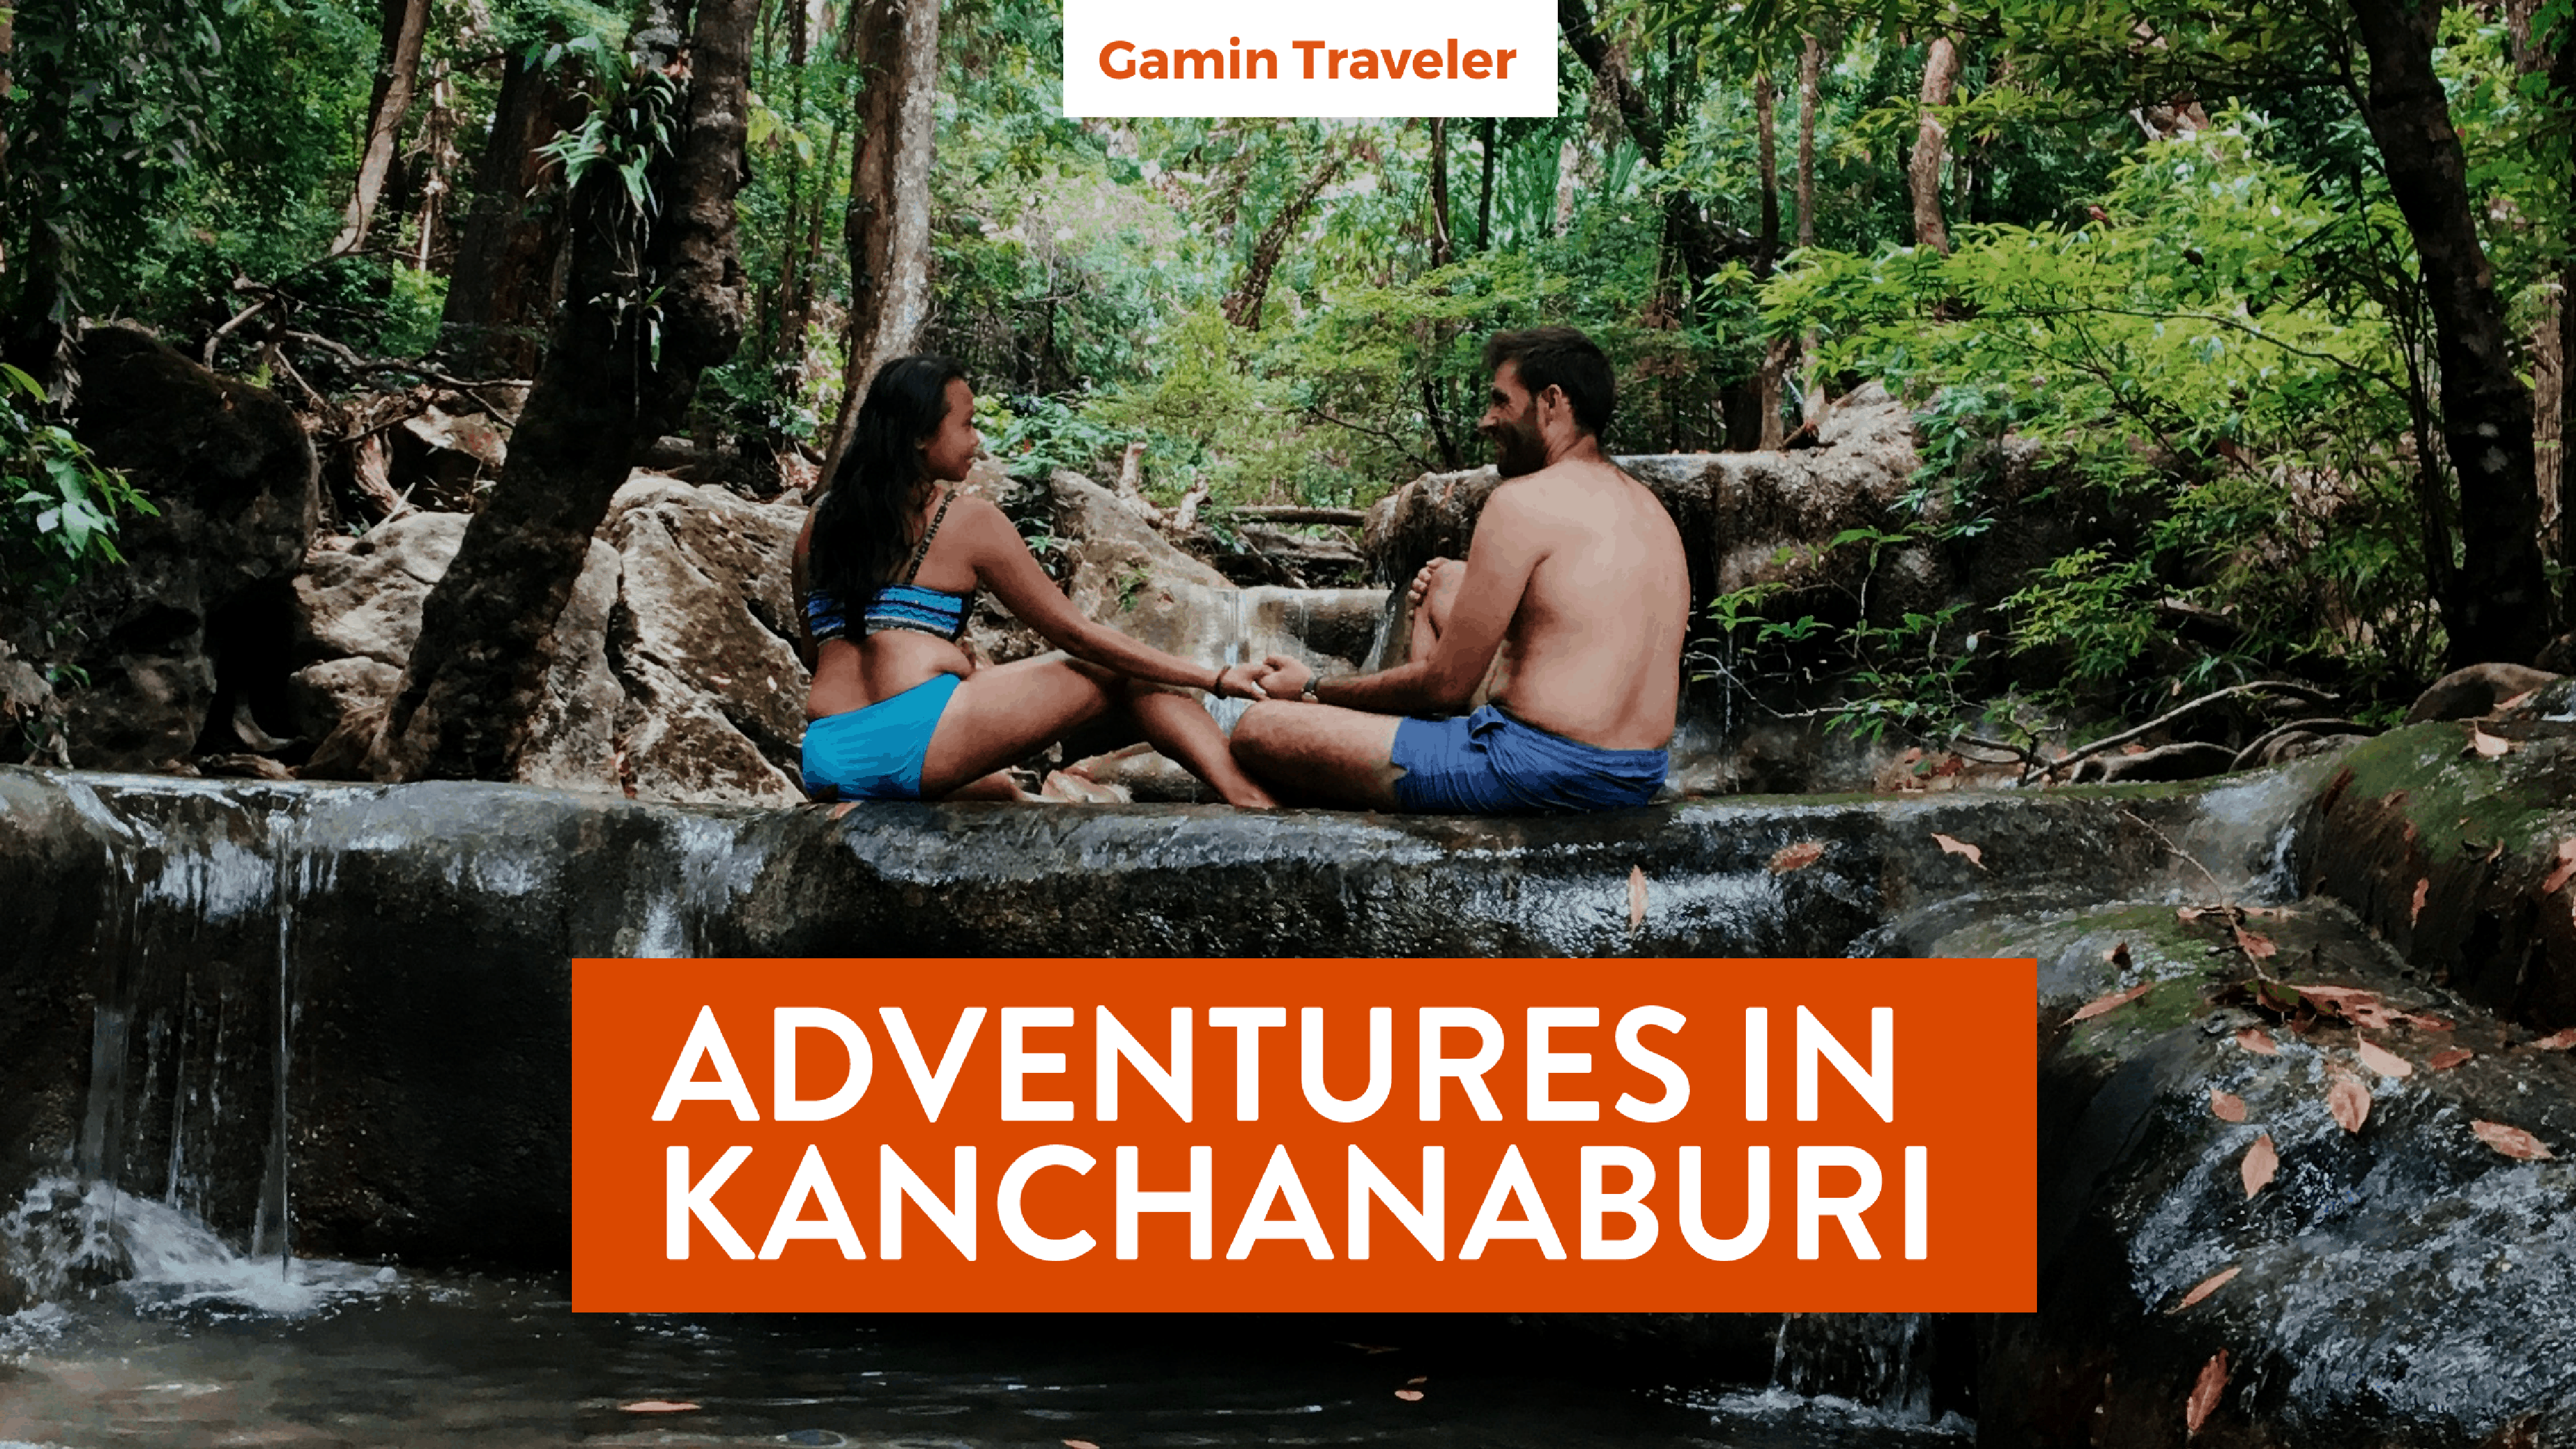 8 Awesome Things To Do Kanchanaburi (Travel Guide) - Gamintraveler